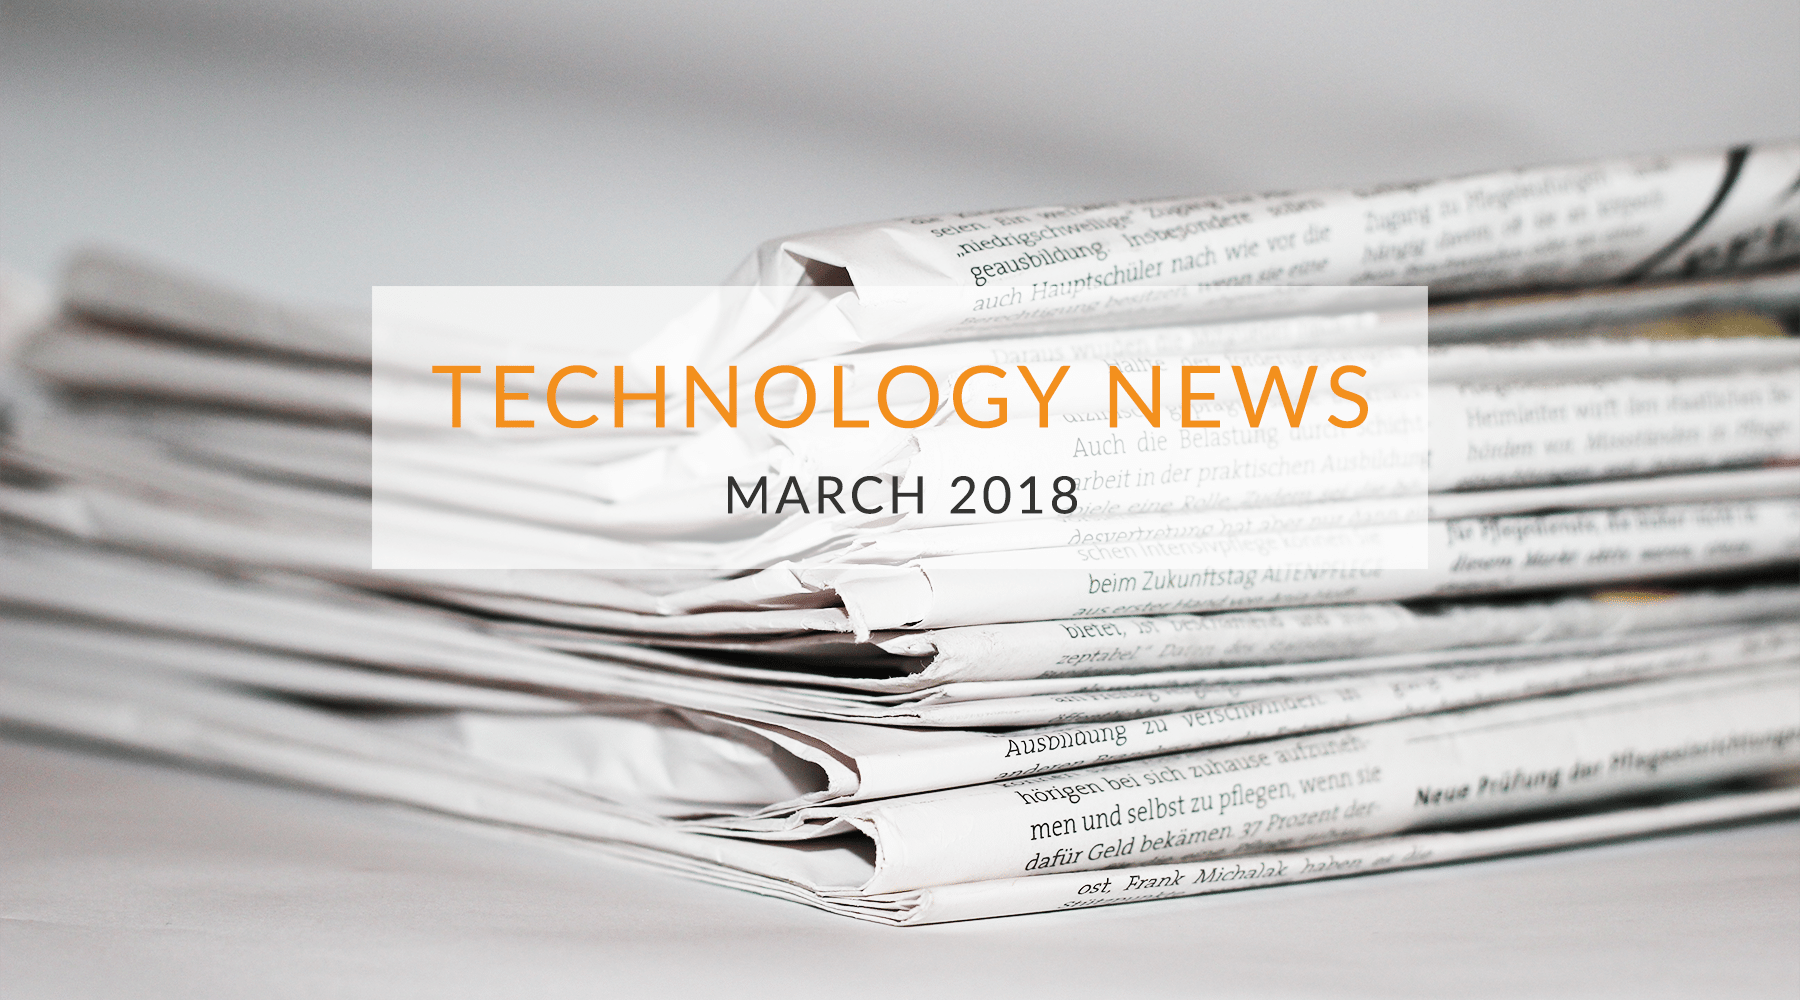 Technology News - March 2018